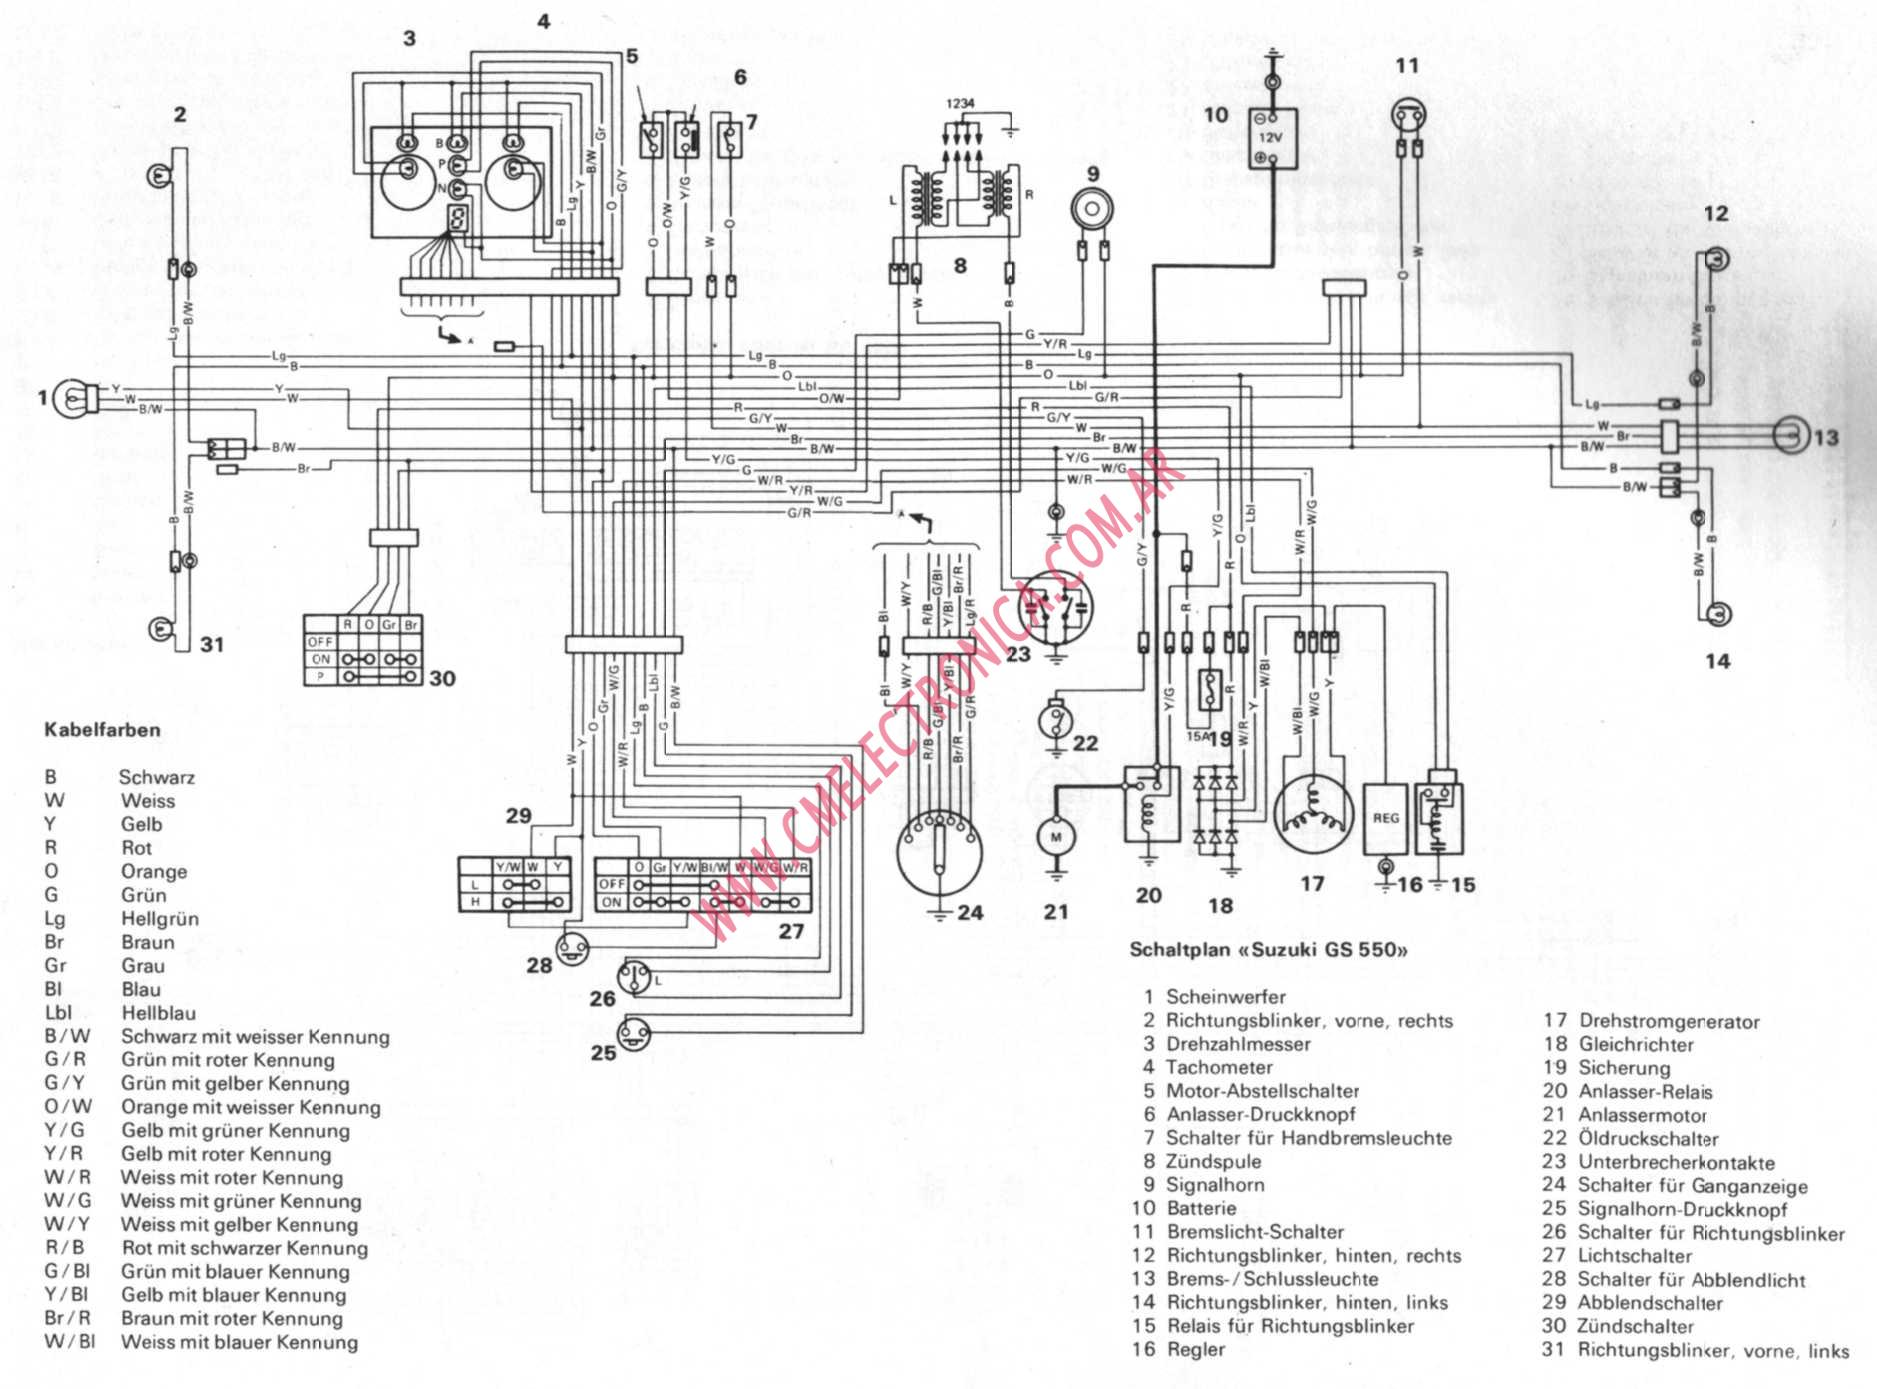 suzuki gs550 suzuki gs550 wiring diagram suzuki gsxr 750 wiring diagram 1978 gs750 wiring diagram at edmiracle.co